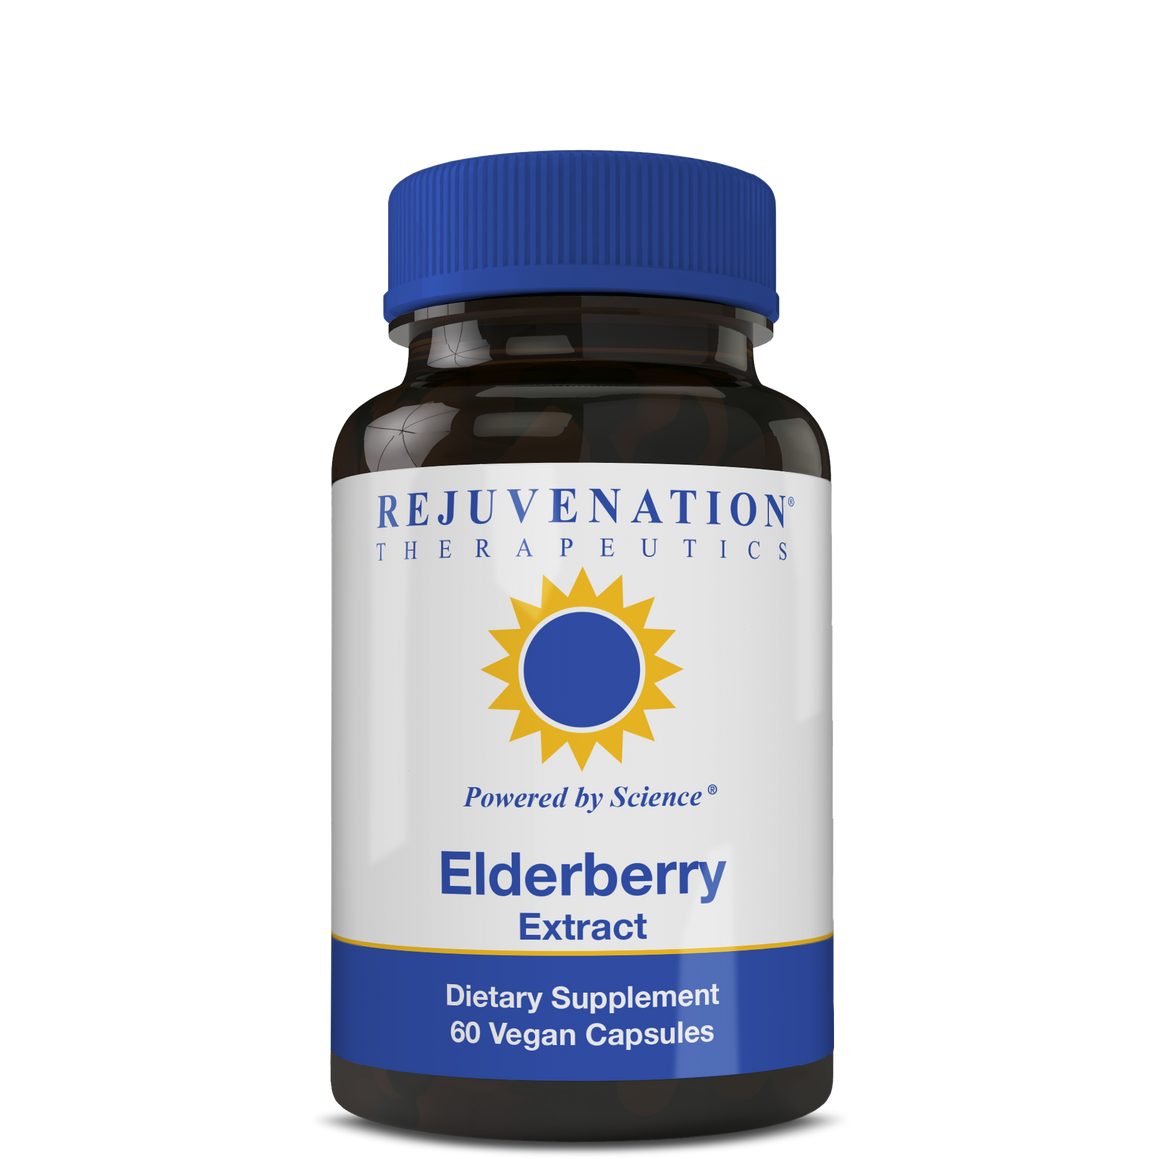 Elderberry Extract (250 mg, 60 Vegan Capsules) - Supports Healthy Immune Response, Non-GMO, Gluten-Free